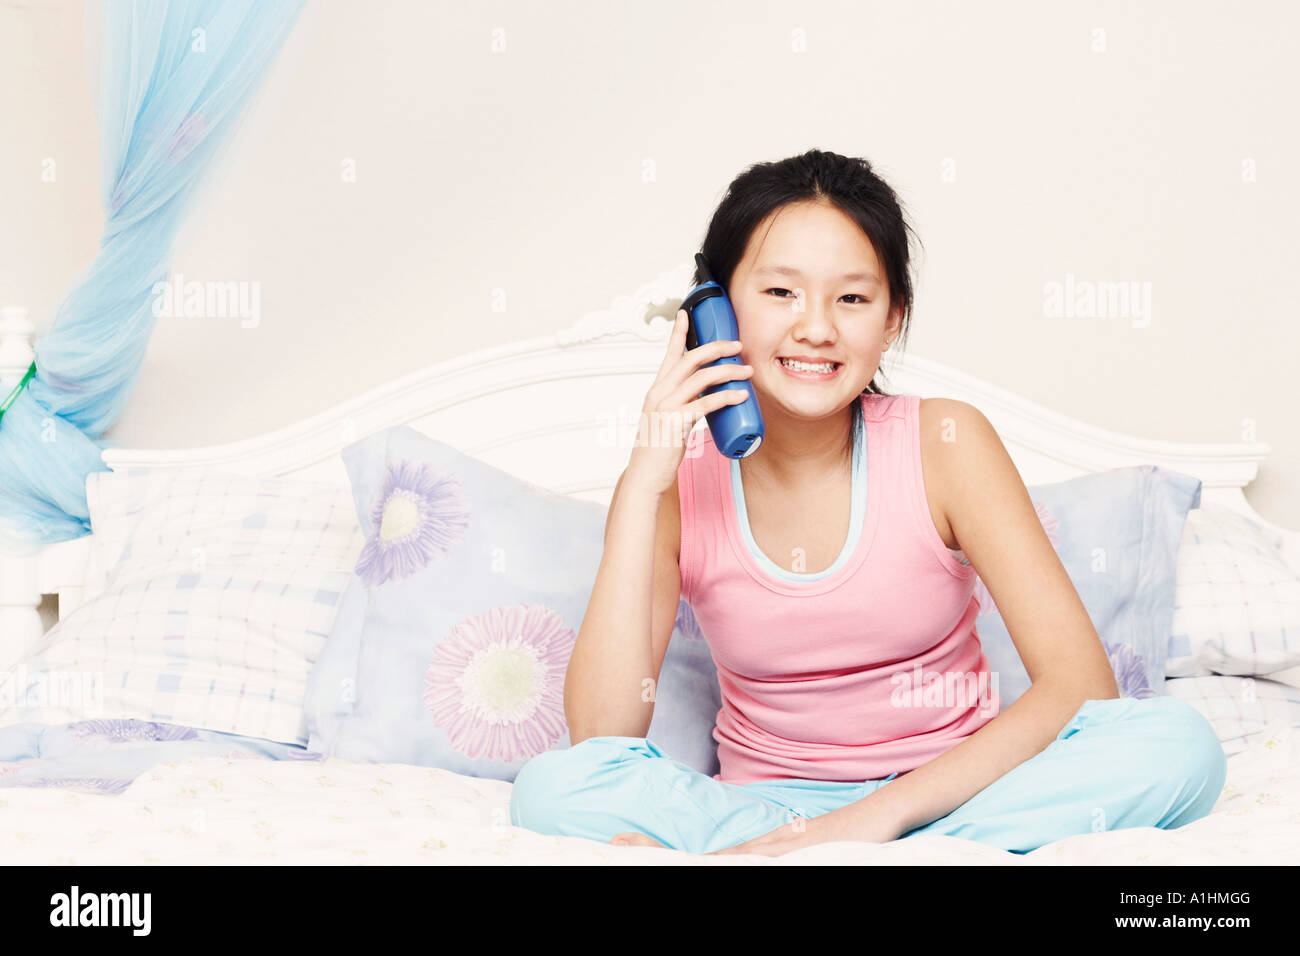 Portrait of a girl using a cordless telephone - Stock Image